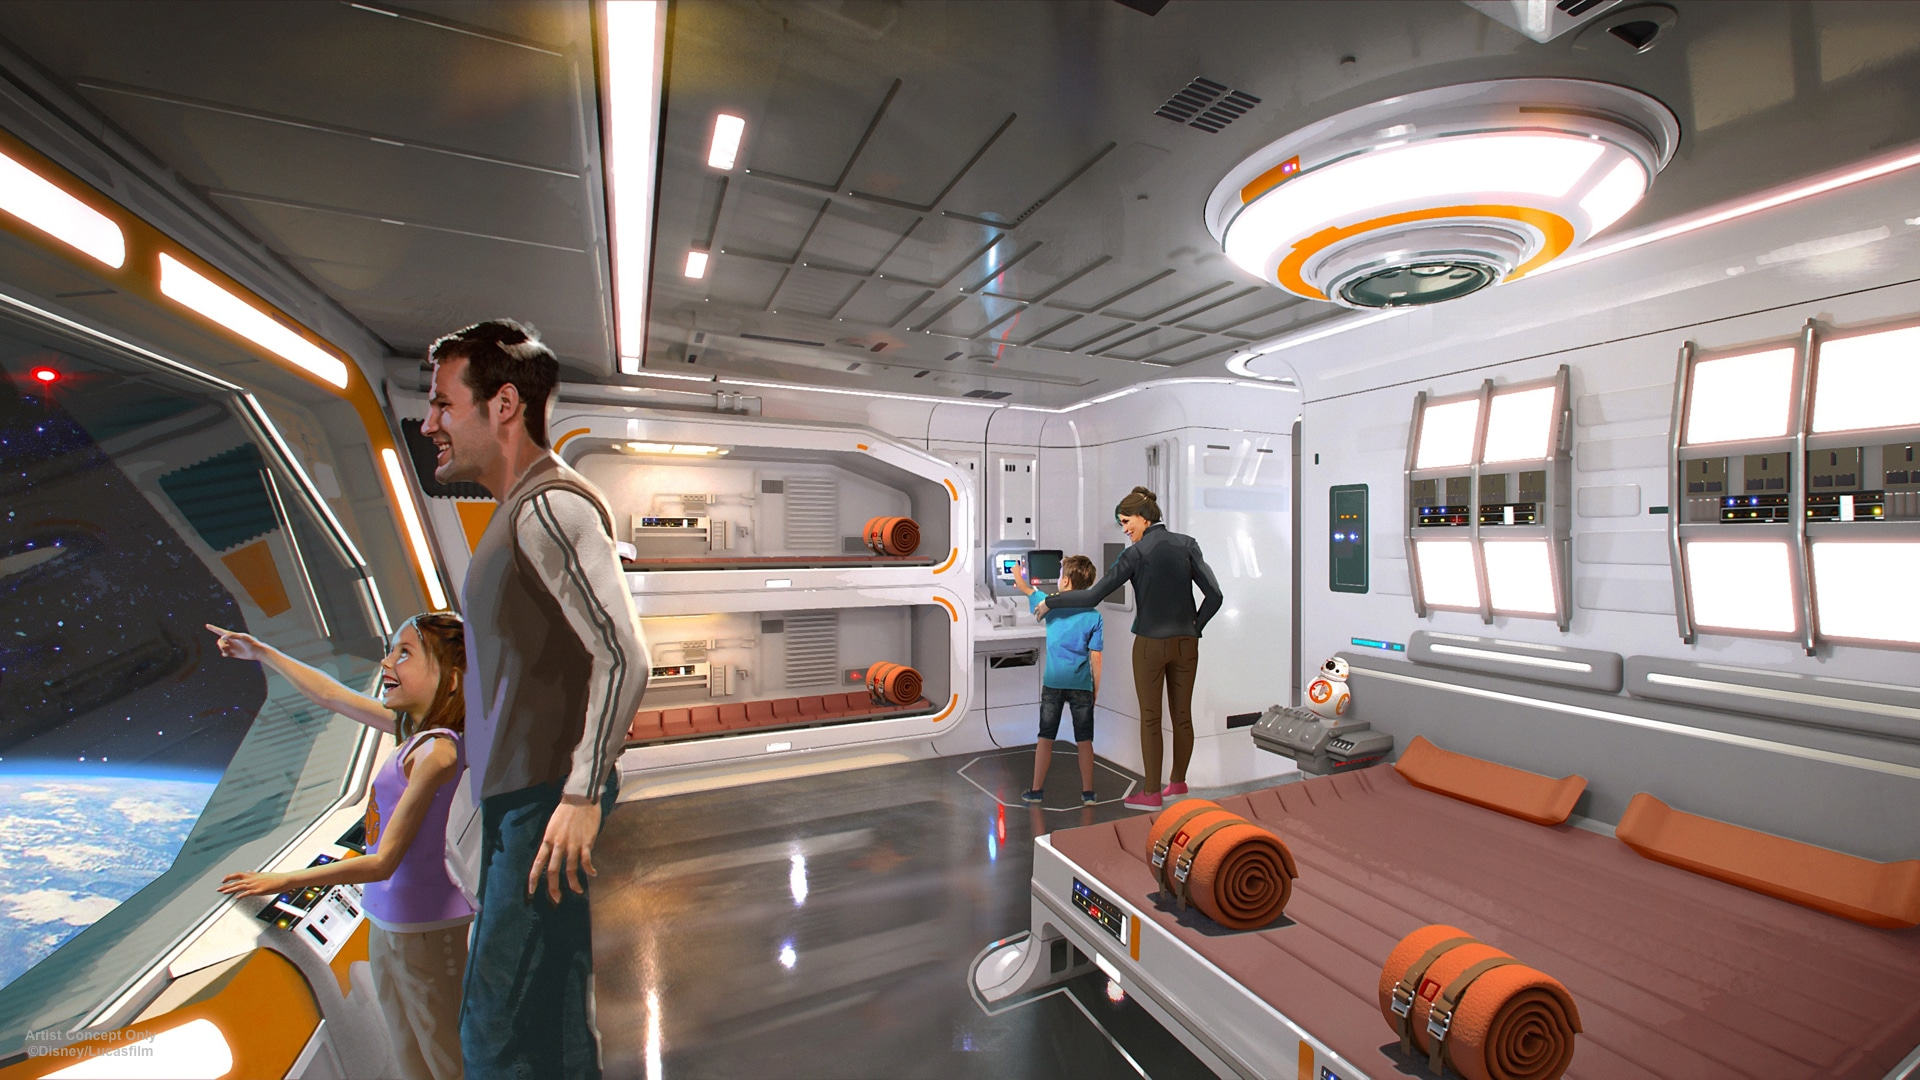 A Disney Star Wars hotel with a view in to space